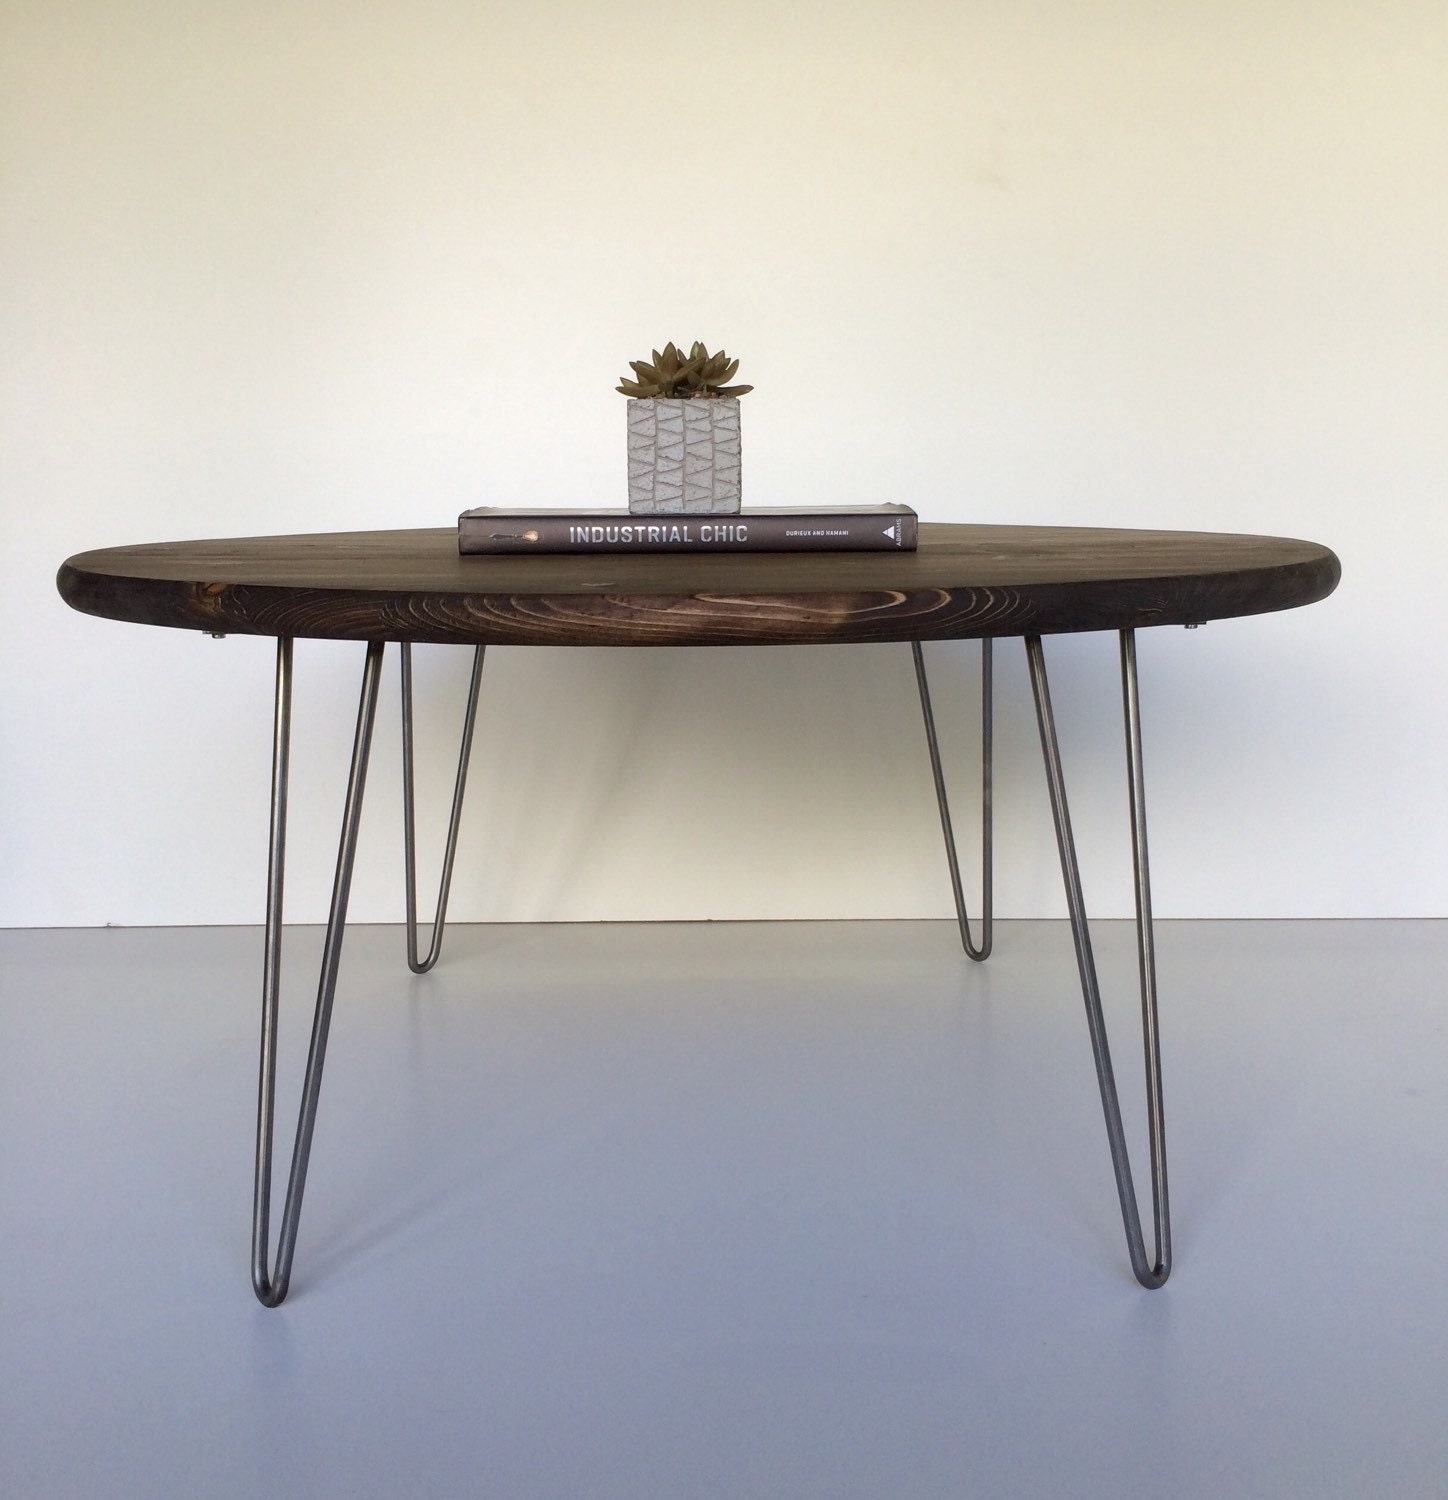 Industrial Chic Coffee Table: 30 Round Industrial Chic Modern Coffee Table By GroveAndAnchor